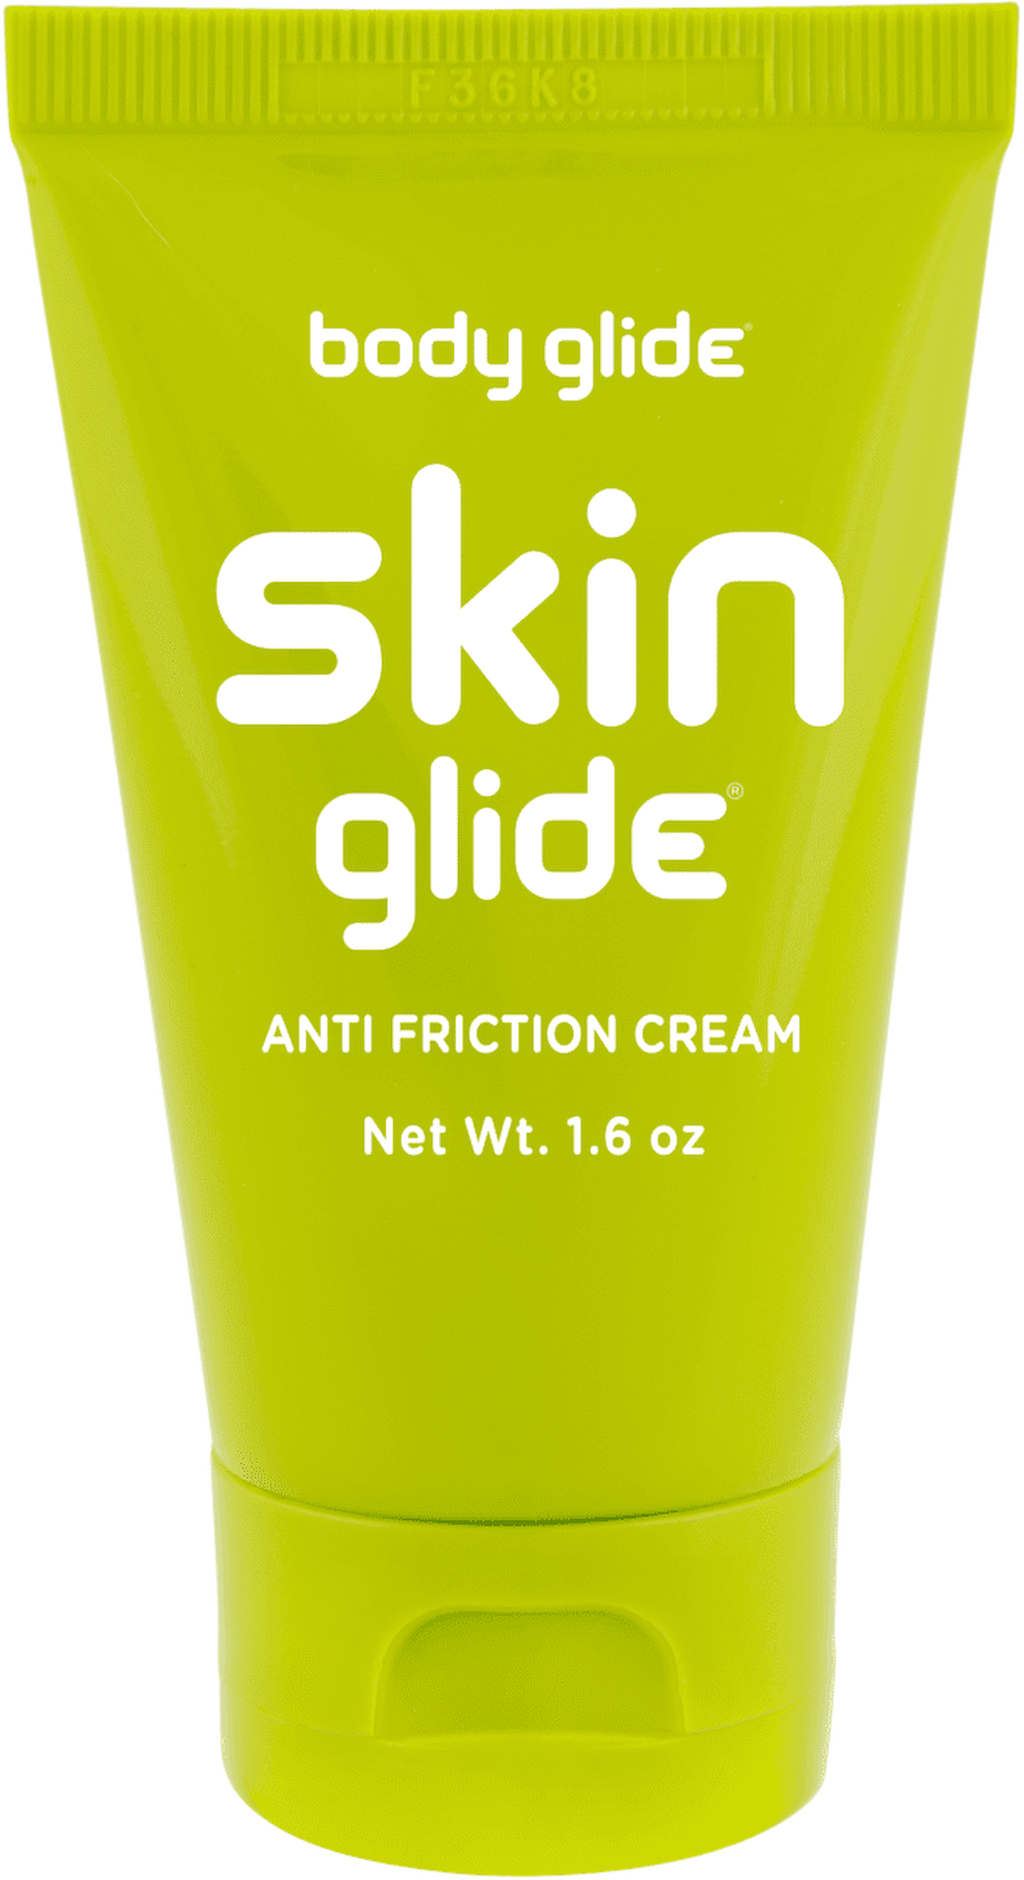 SKIN GLIDE - Turns into a dry shield 45.36 g (tube)